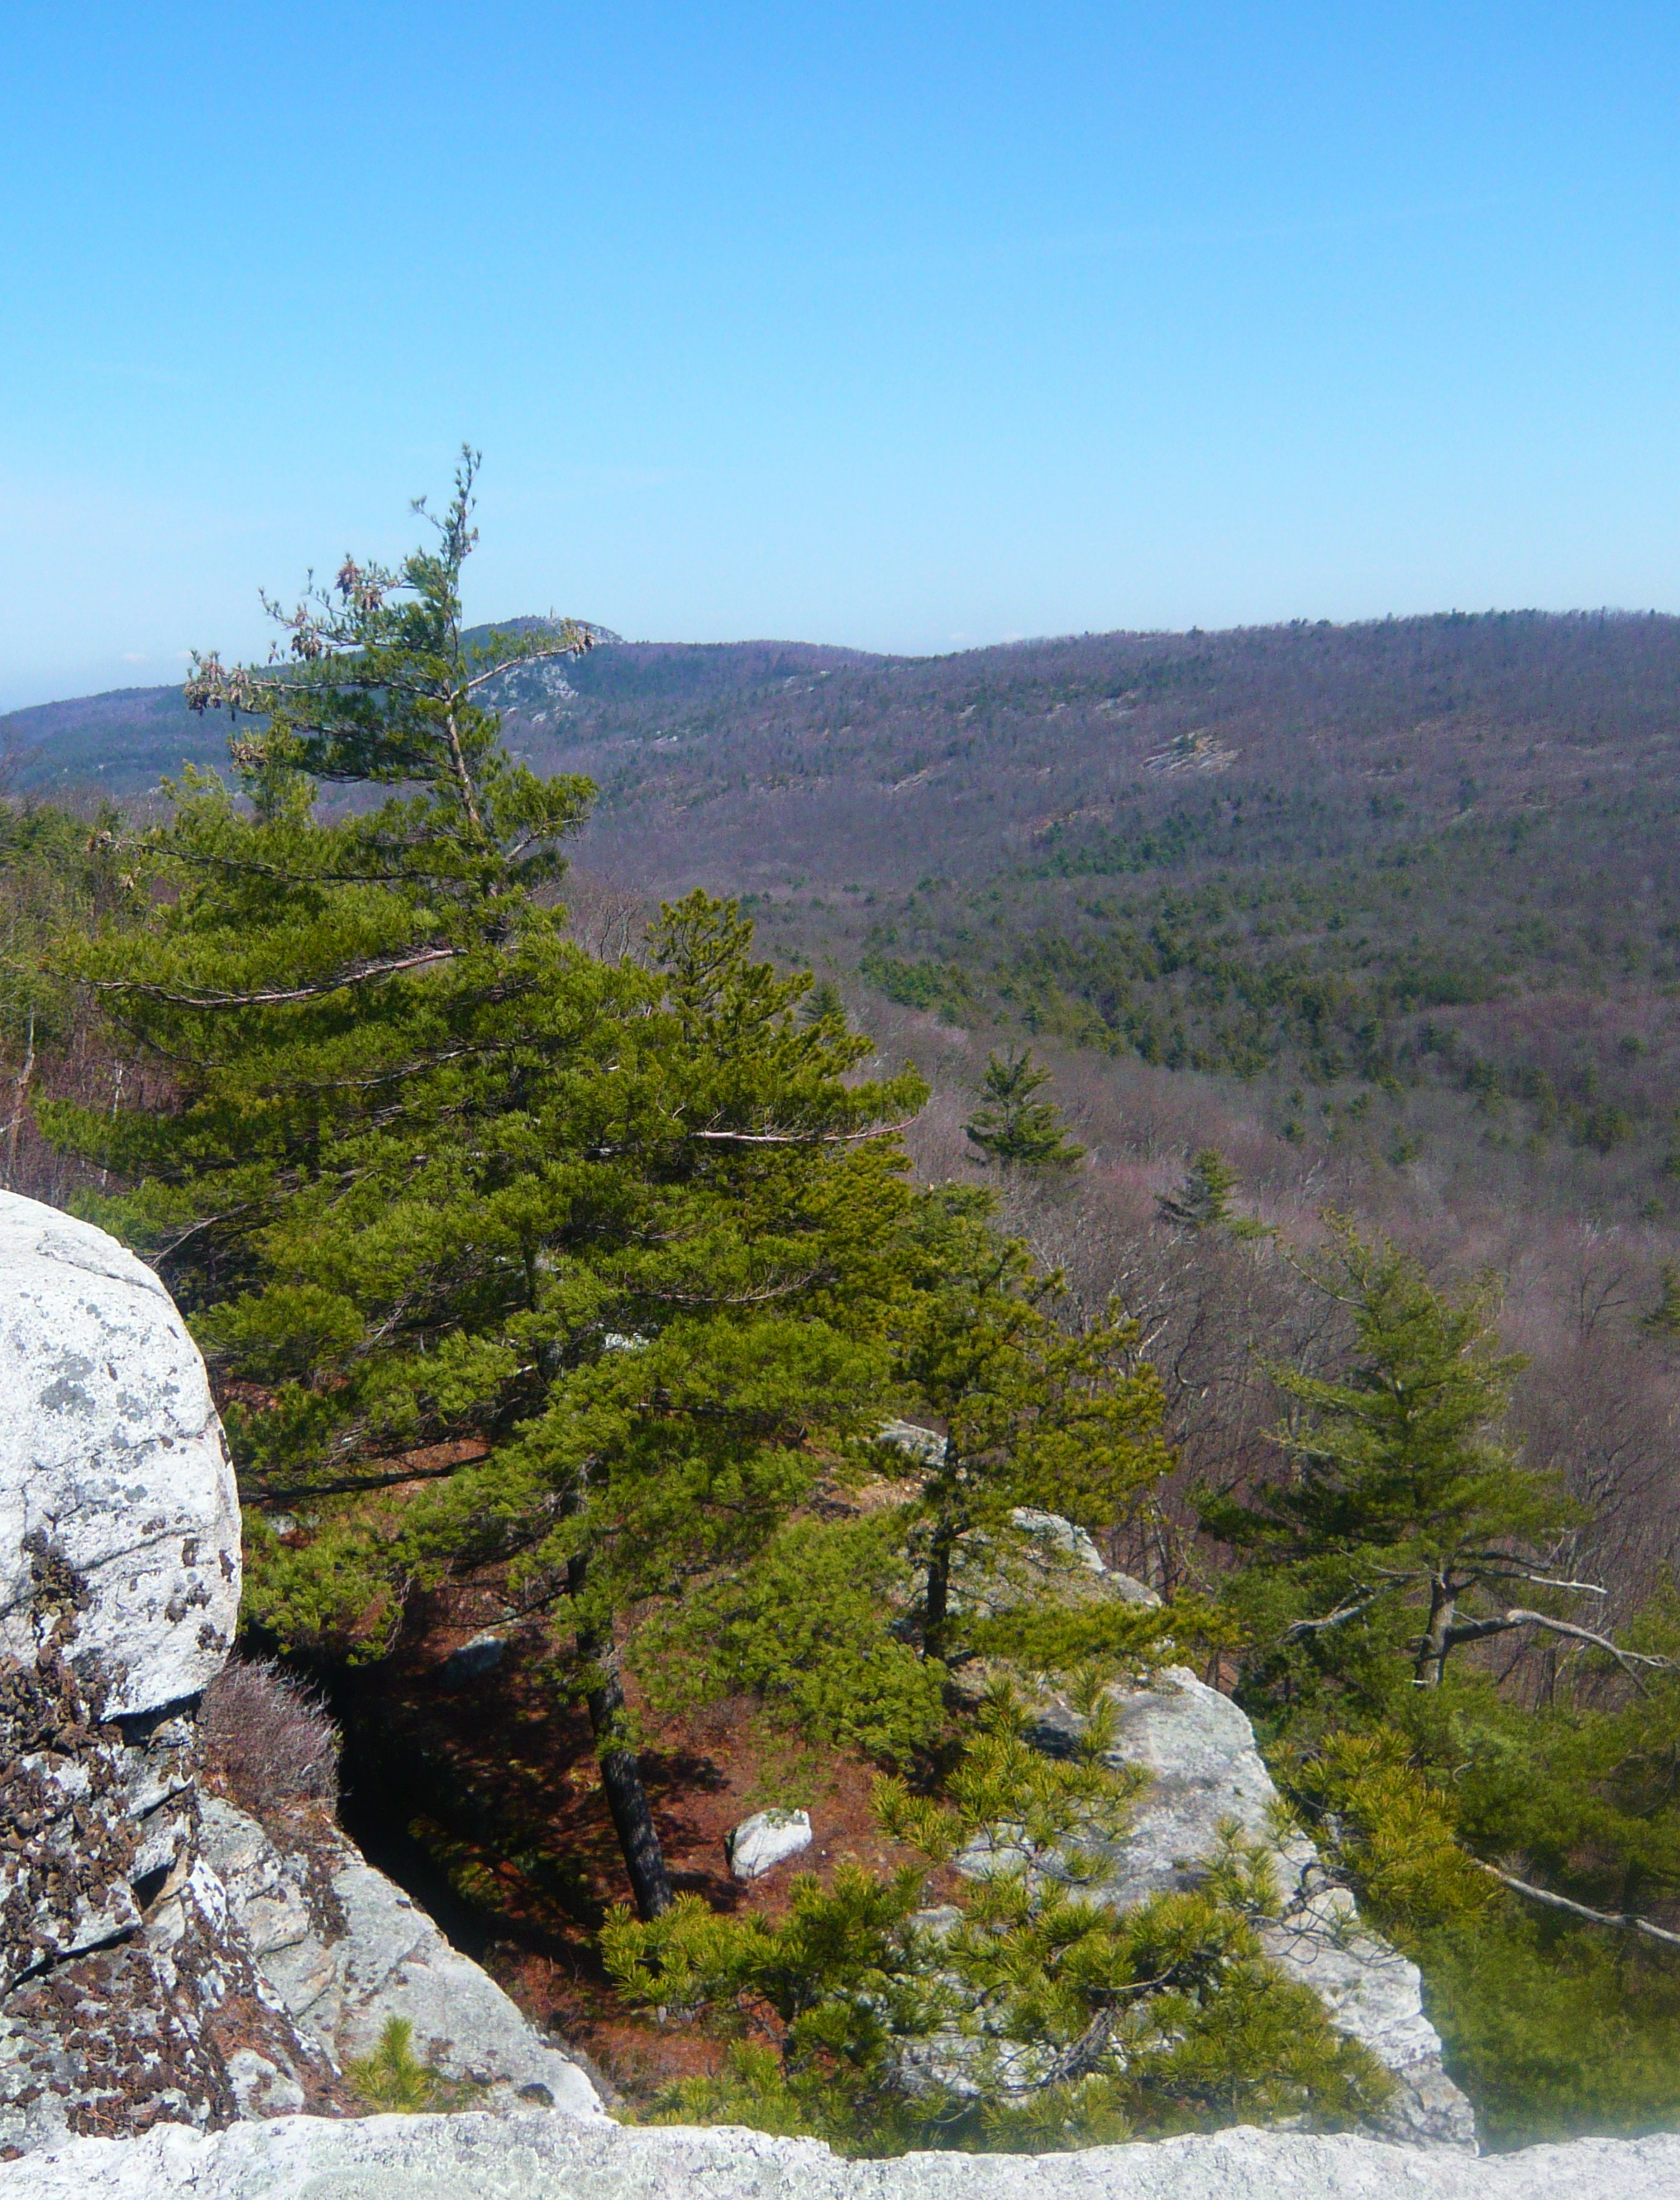 Appropos of nothing, the view from the top of Lost City from our hike in the Gunks yesterday.  Spring has sprung!